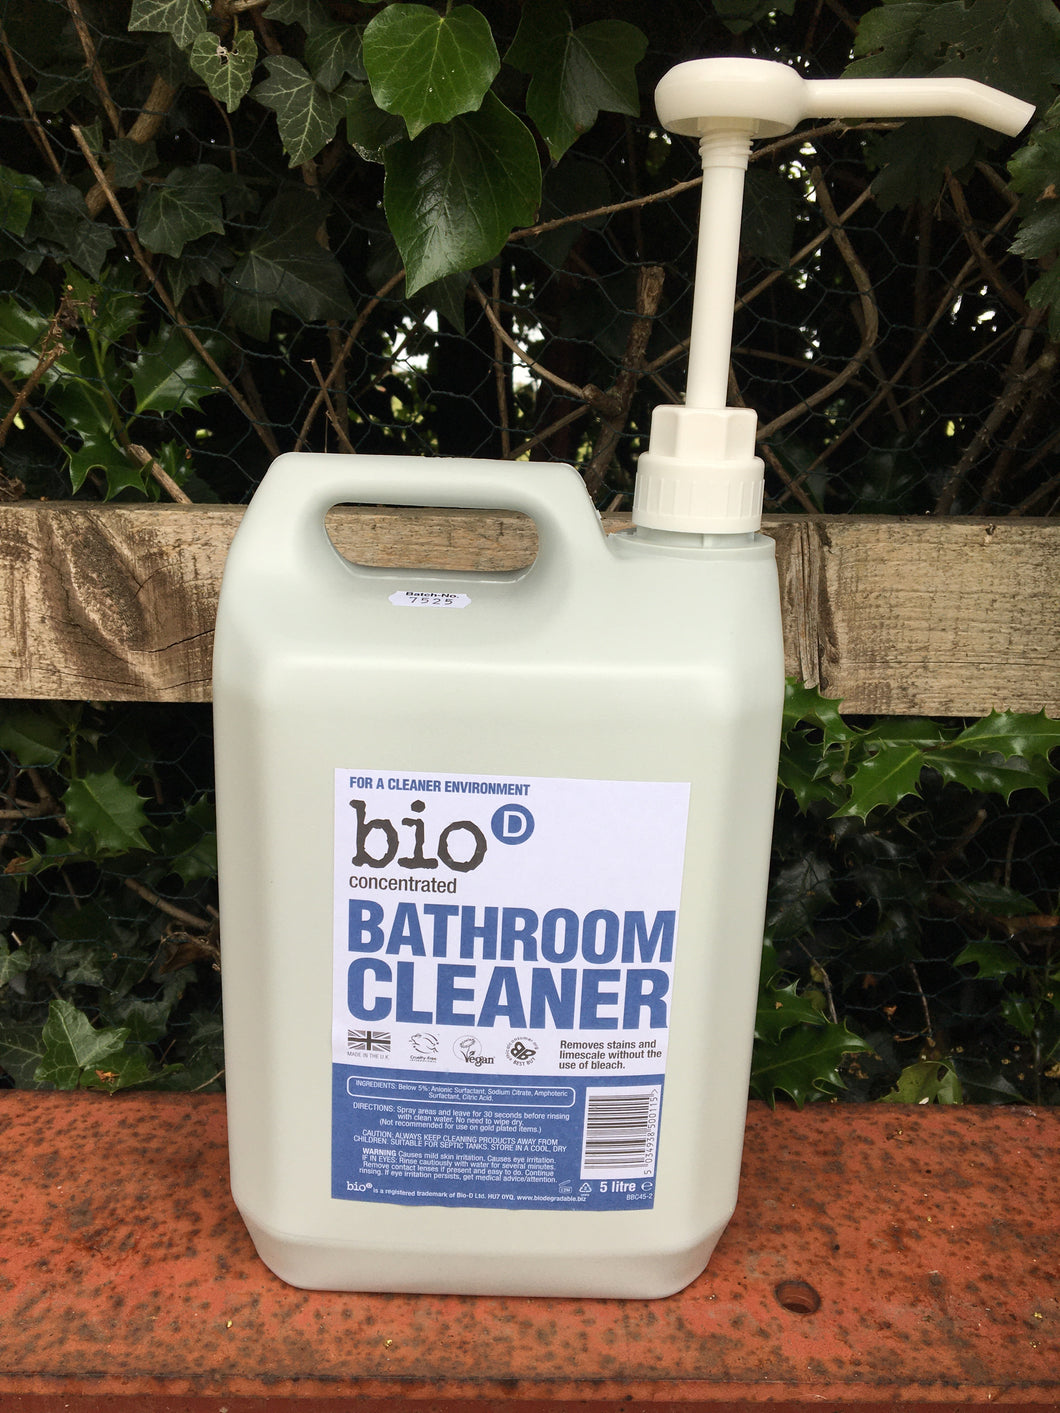 Bio D Bathroom Cleaner Refill only